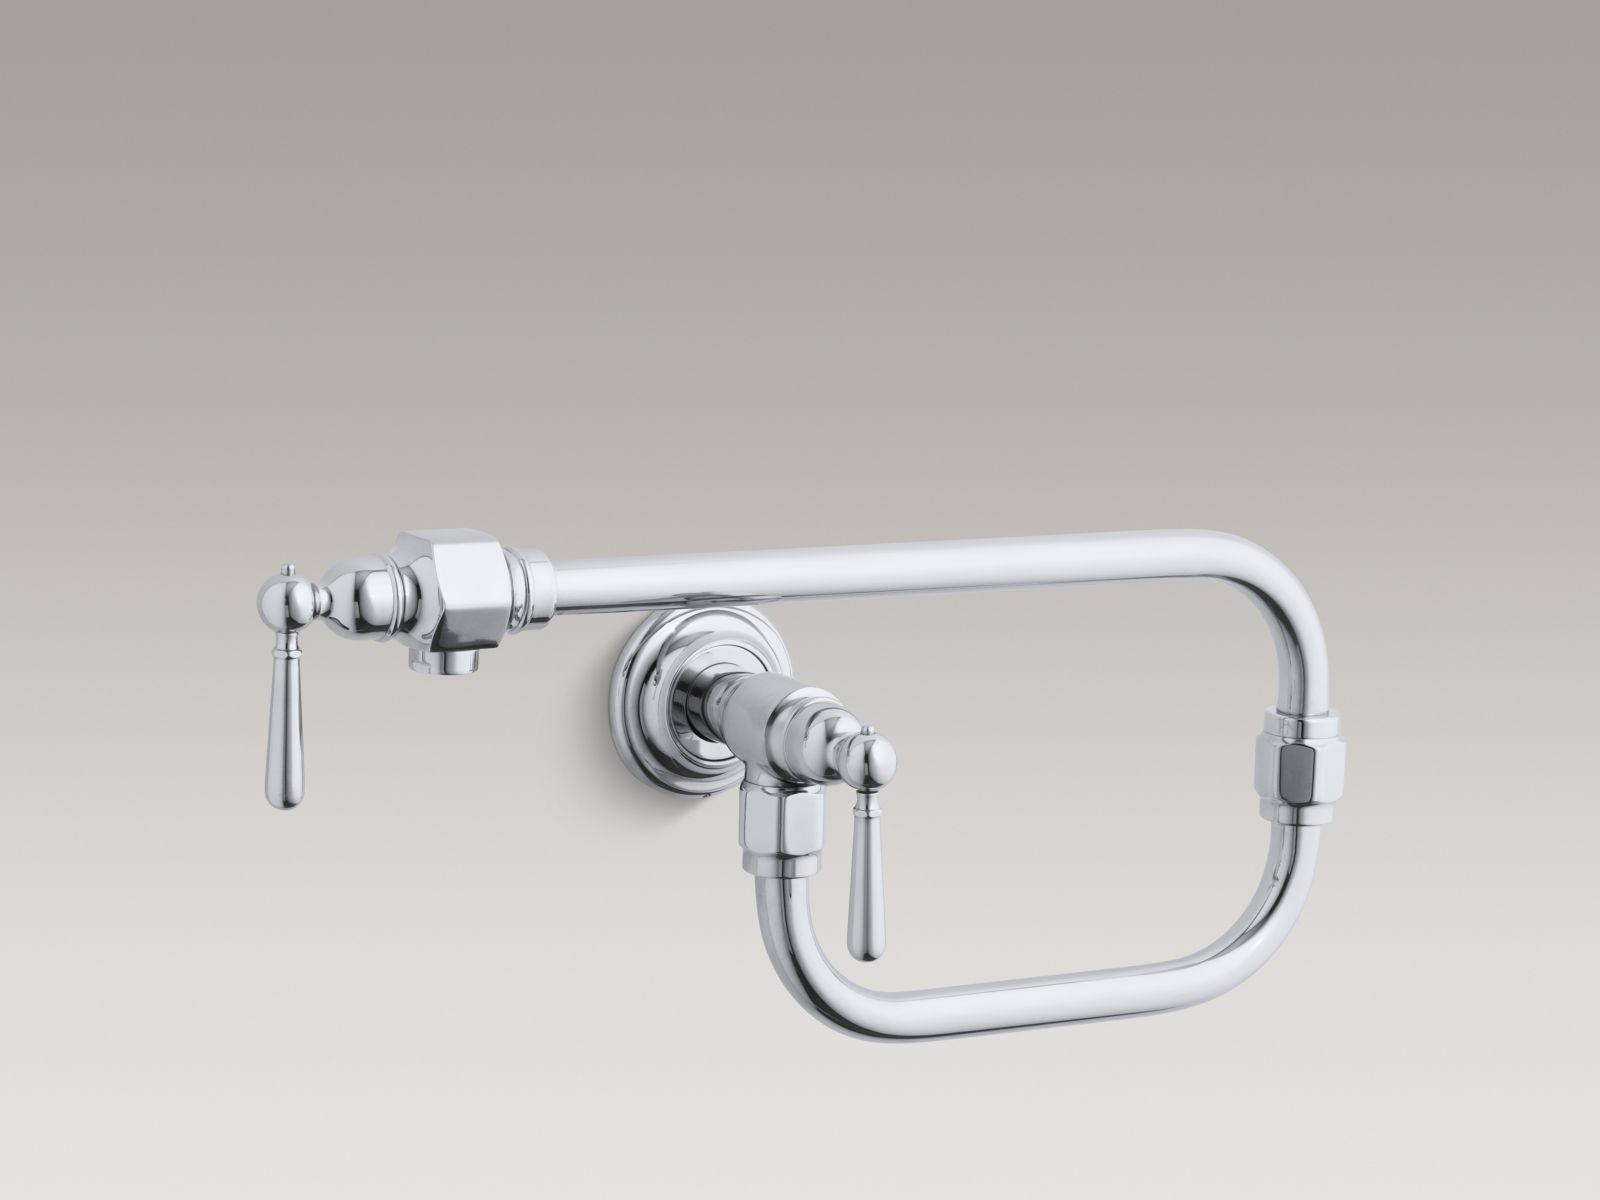 Ideas, kohler pot filler faucets kohler pot filler faucets buyplumbing category pot filler faucet 1600 x 1200  .